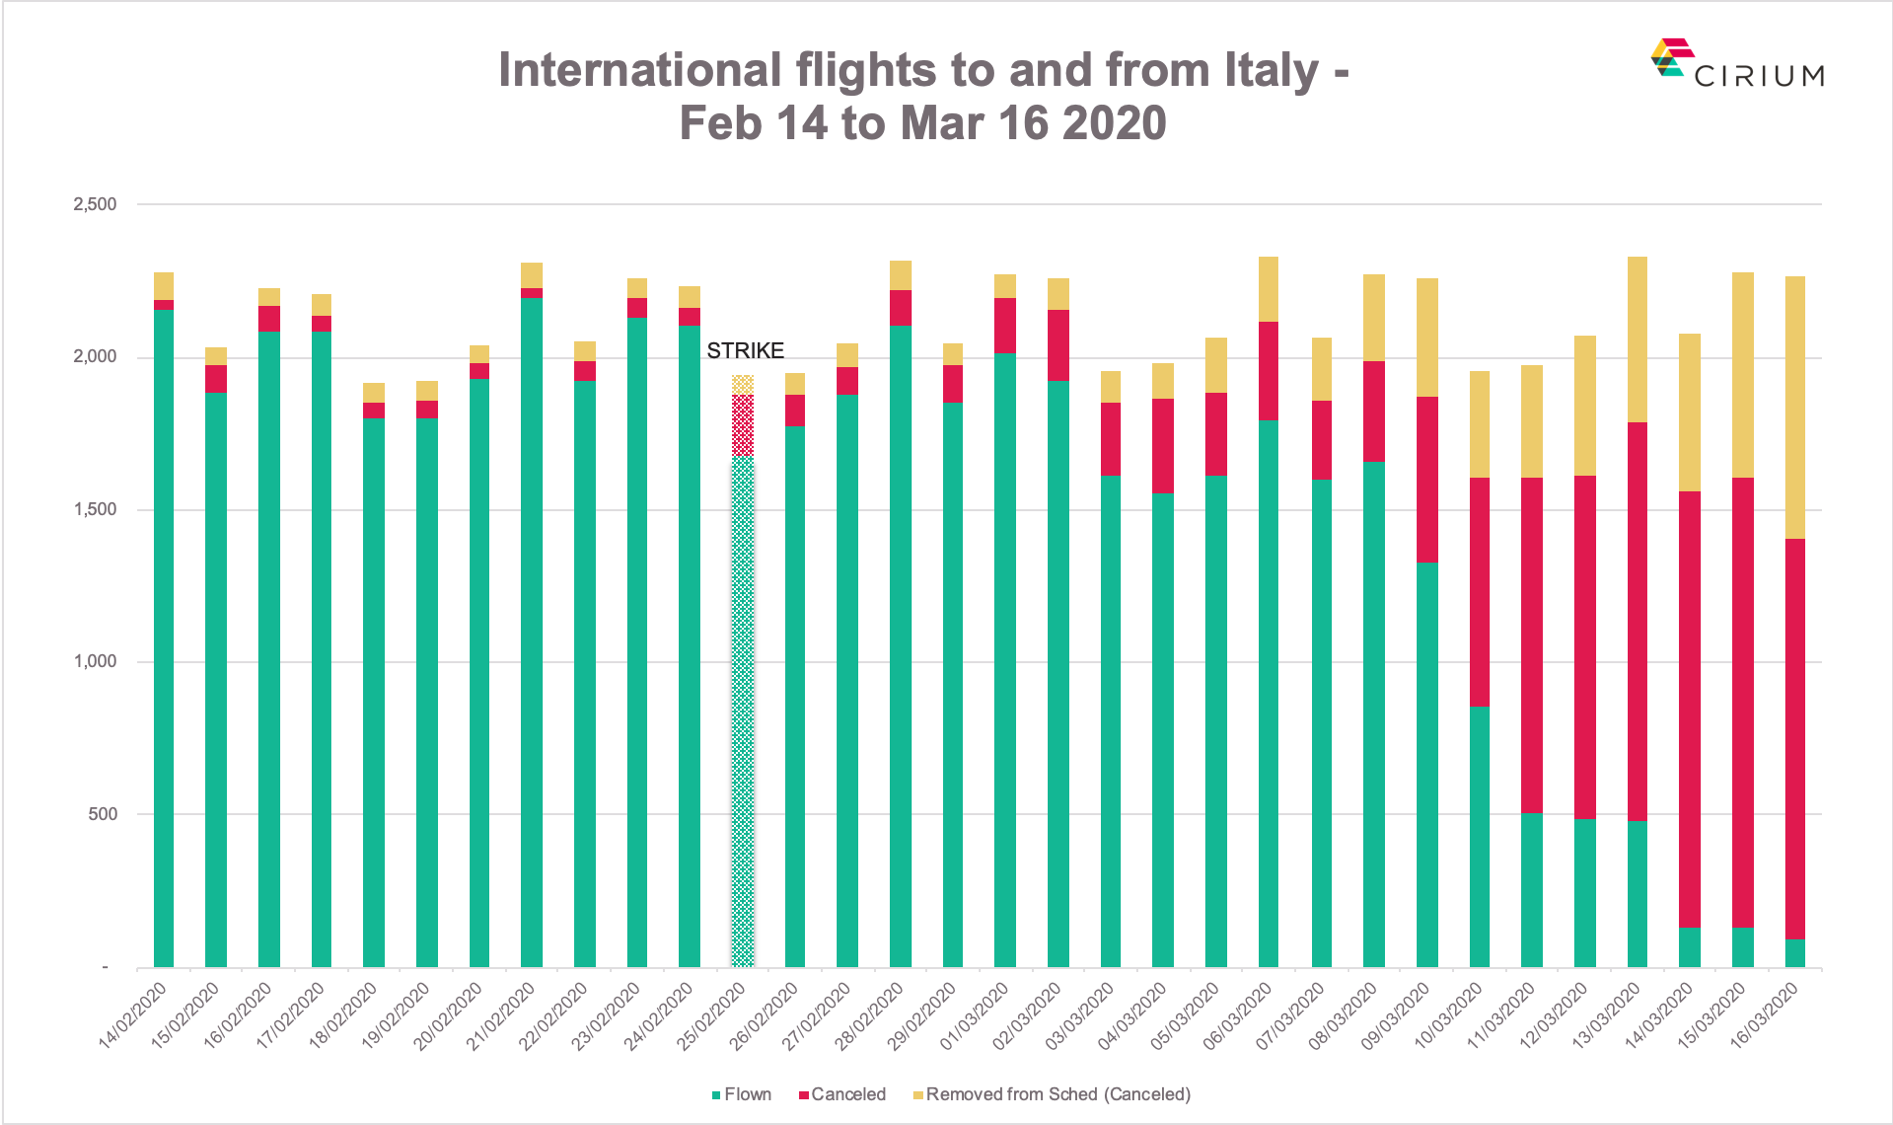 International flights to, from and within Italy